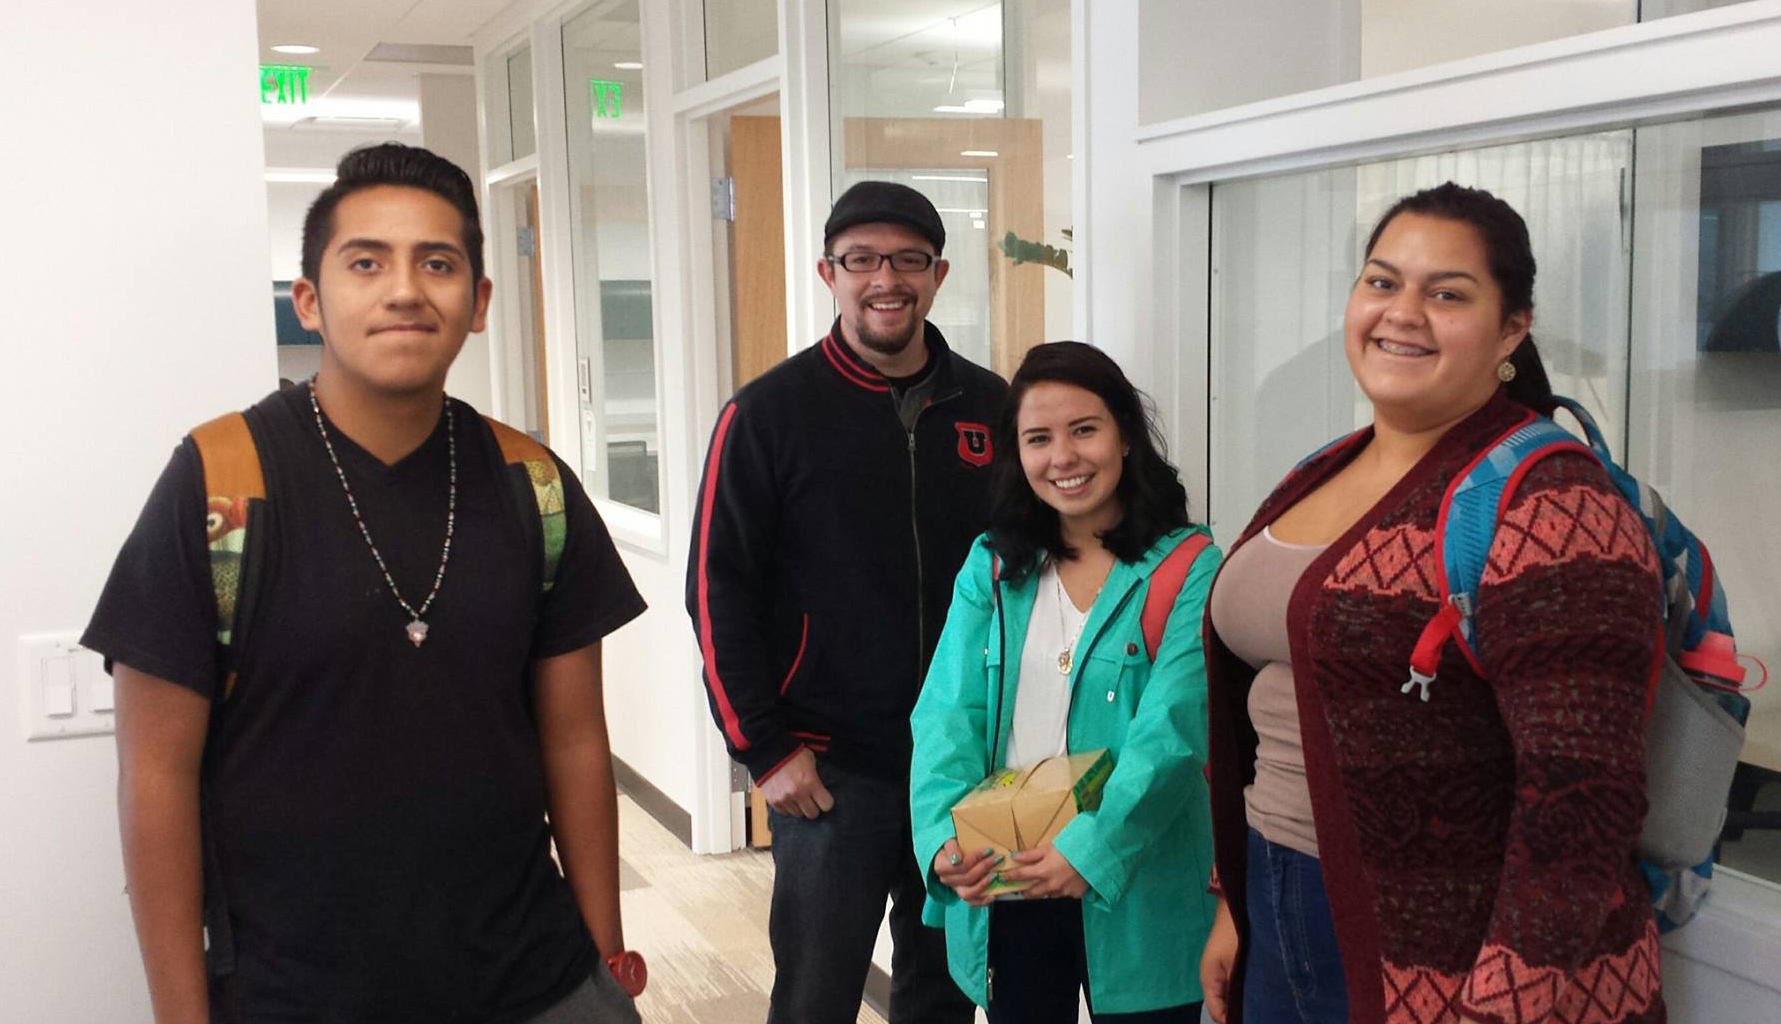 four students standing in hallway and smiling